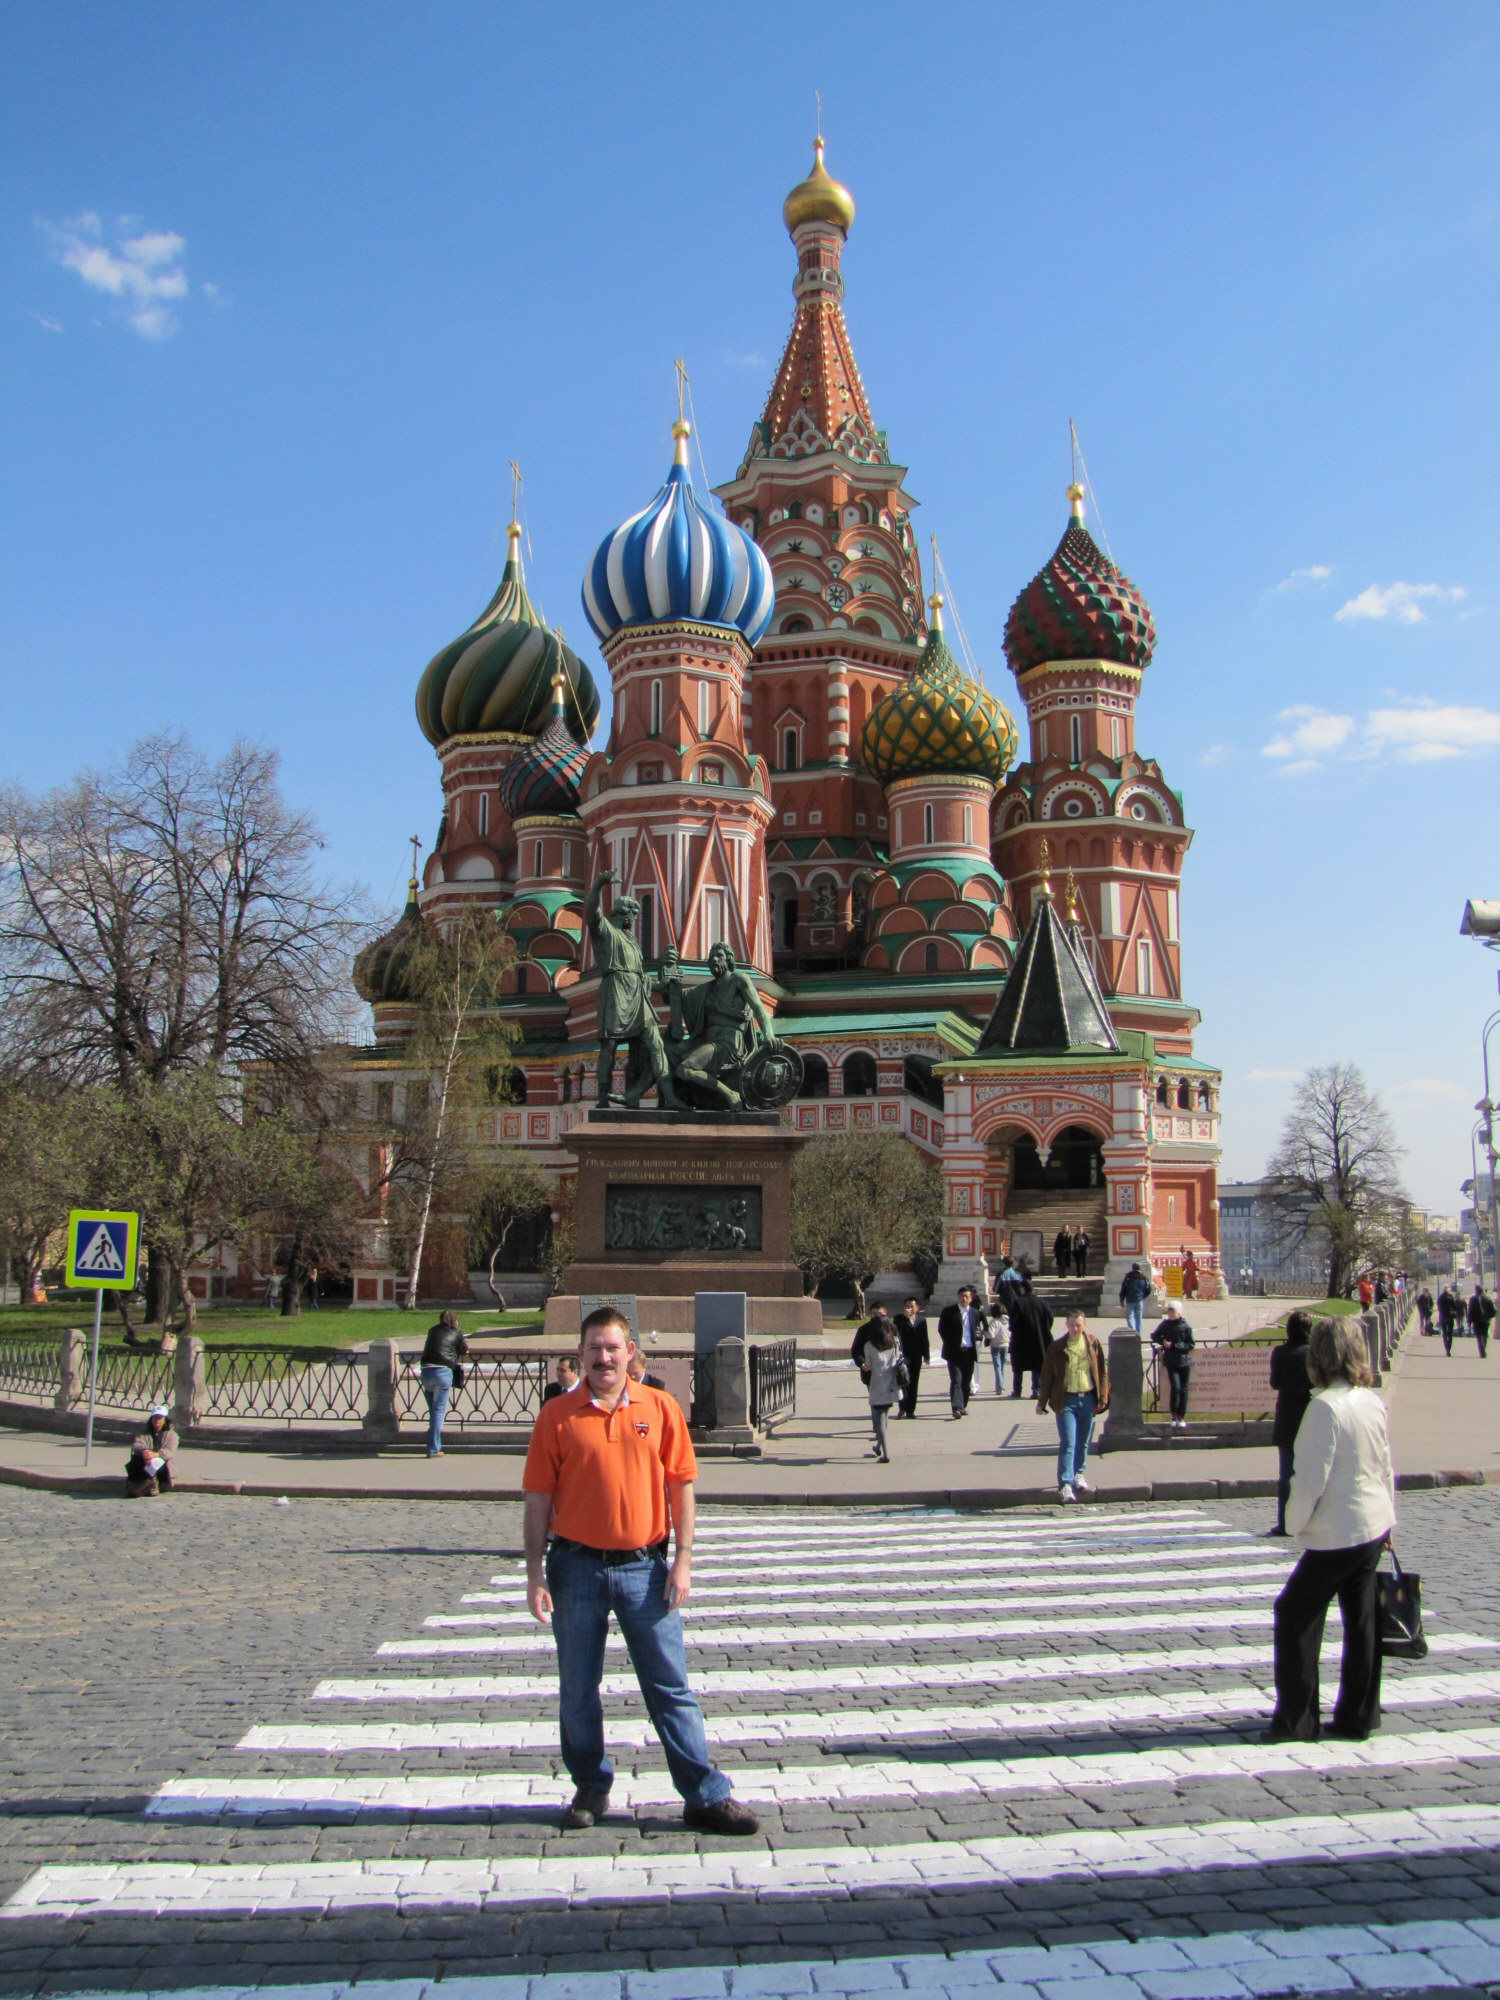 St. Basil's Cathedral on Red Square, Moscow Apr 2010